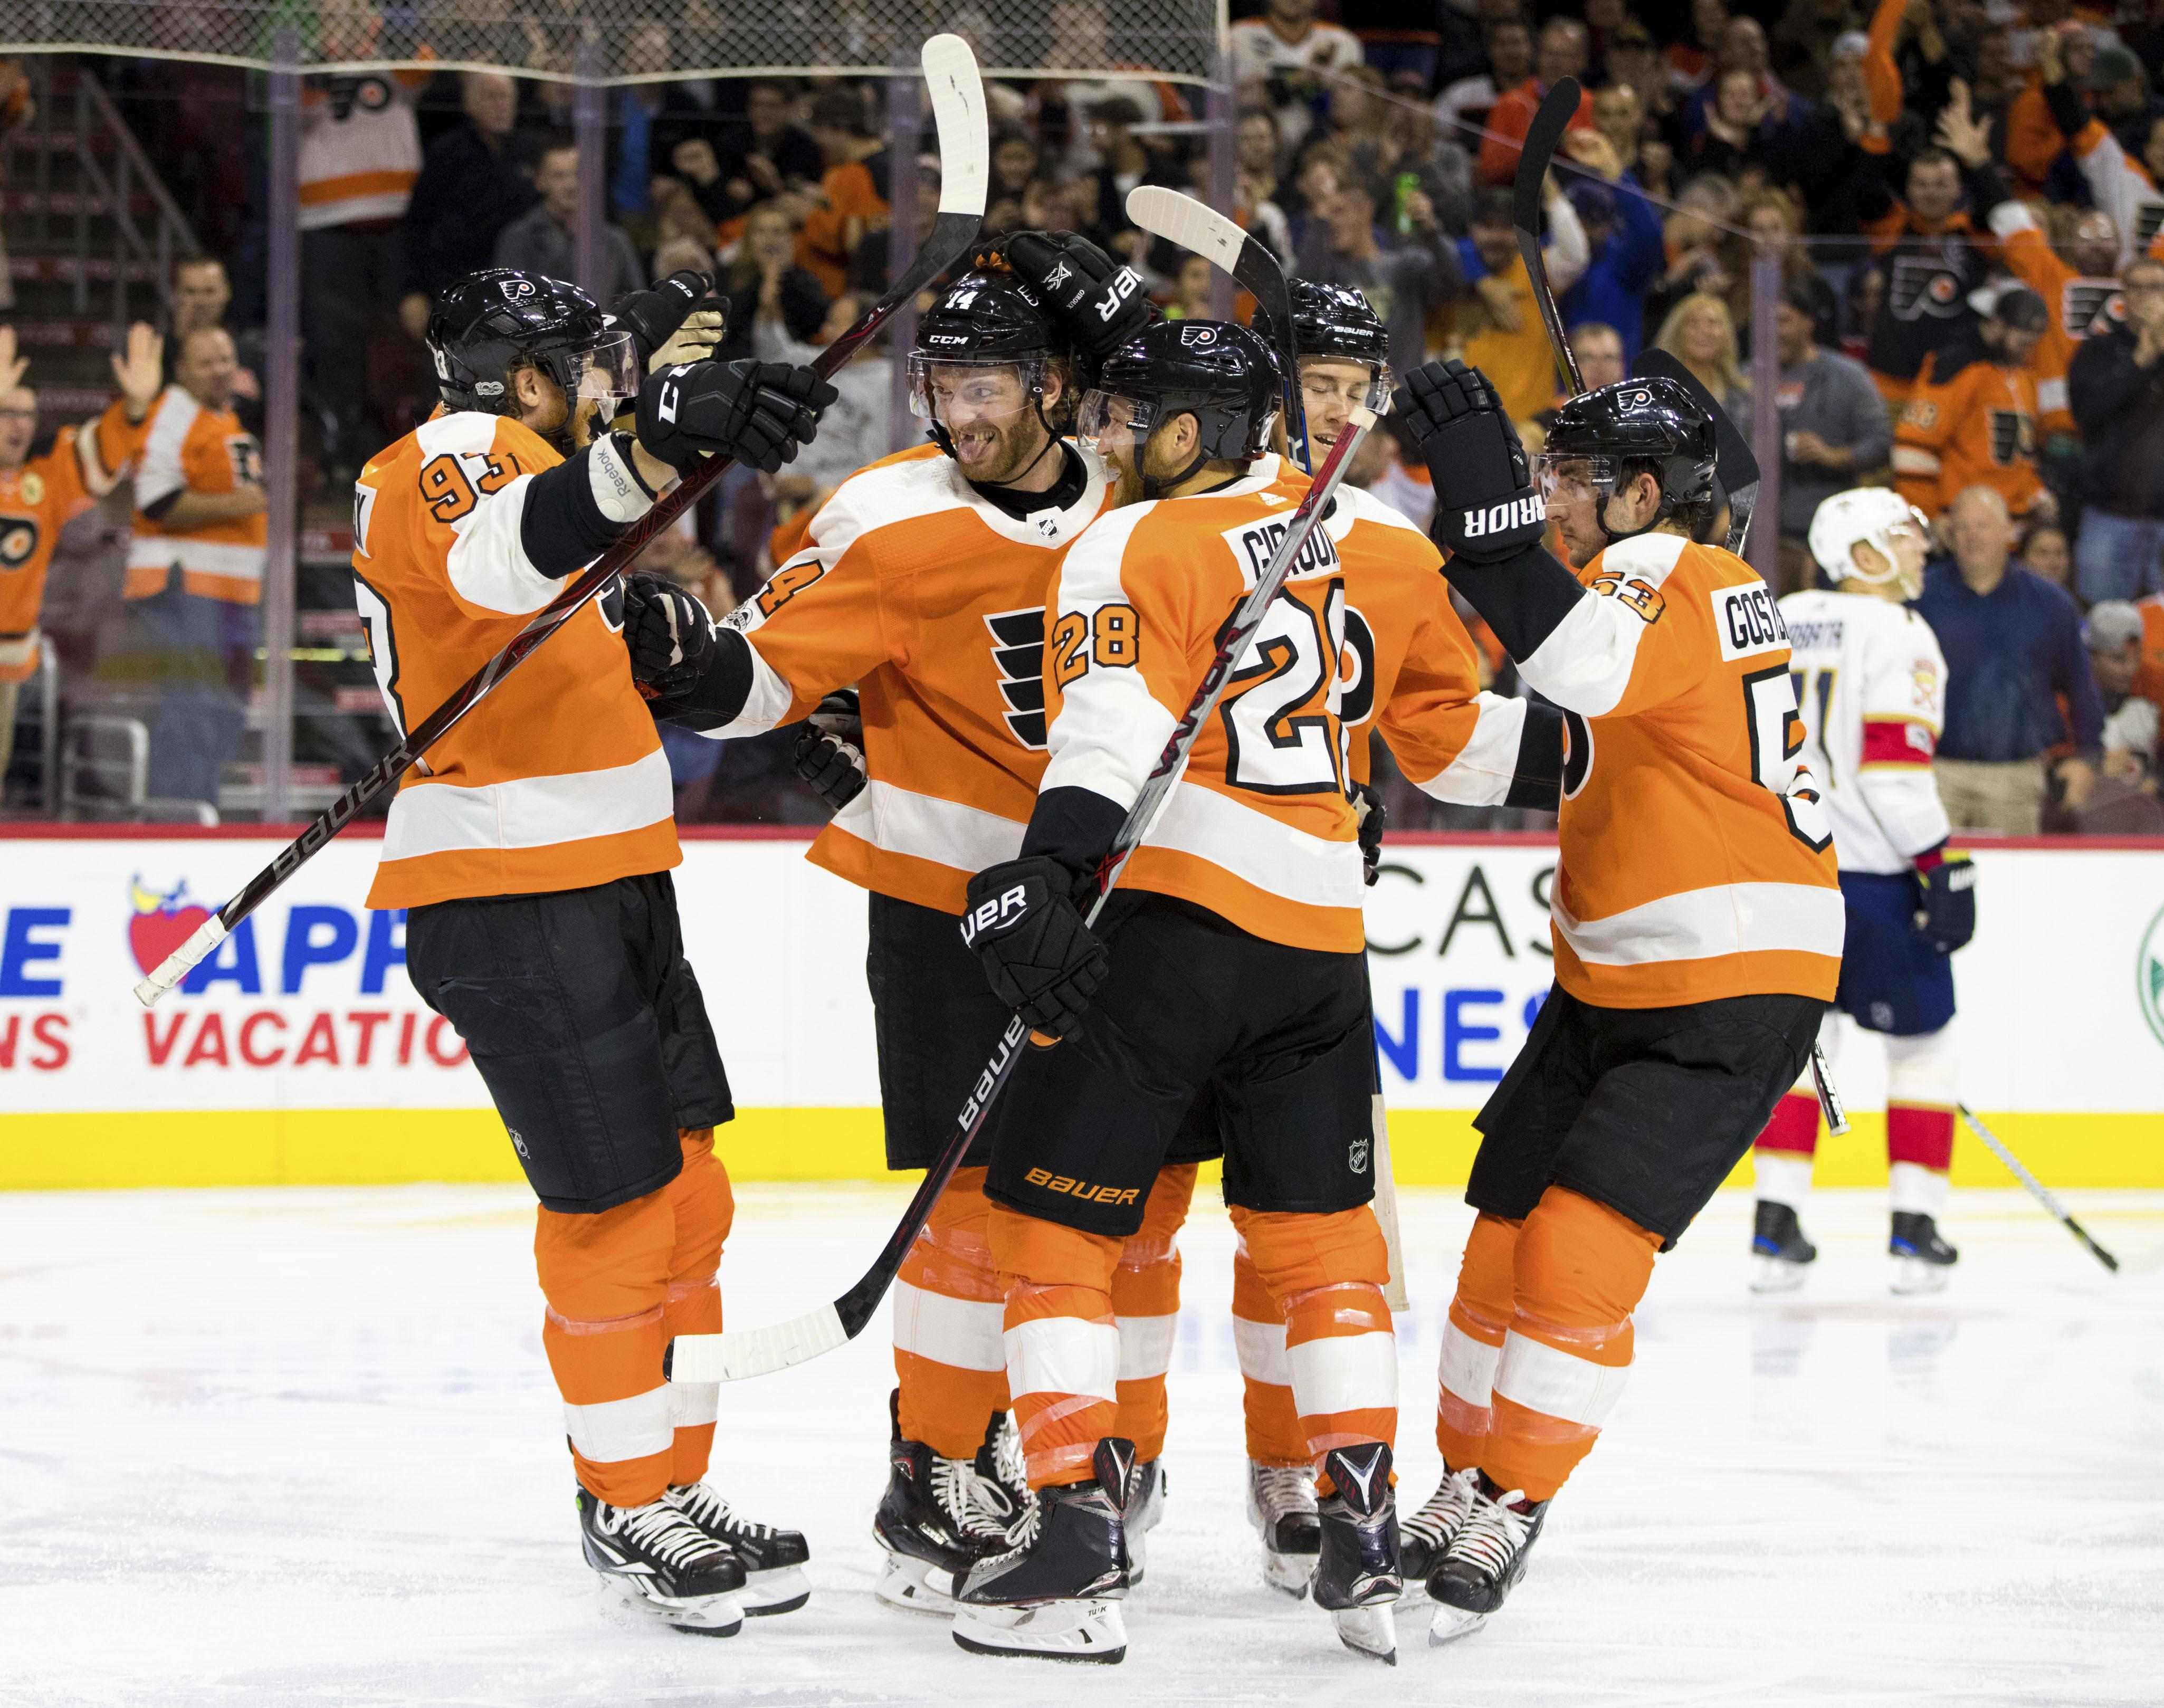 Panthers_flyers_hockey_70609